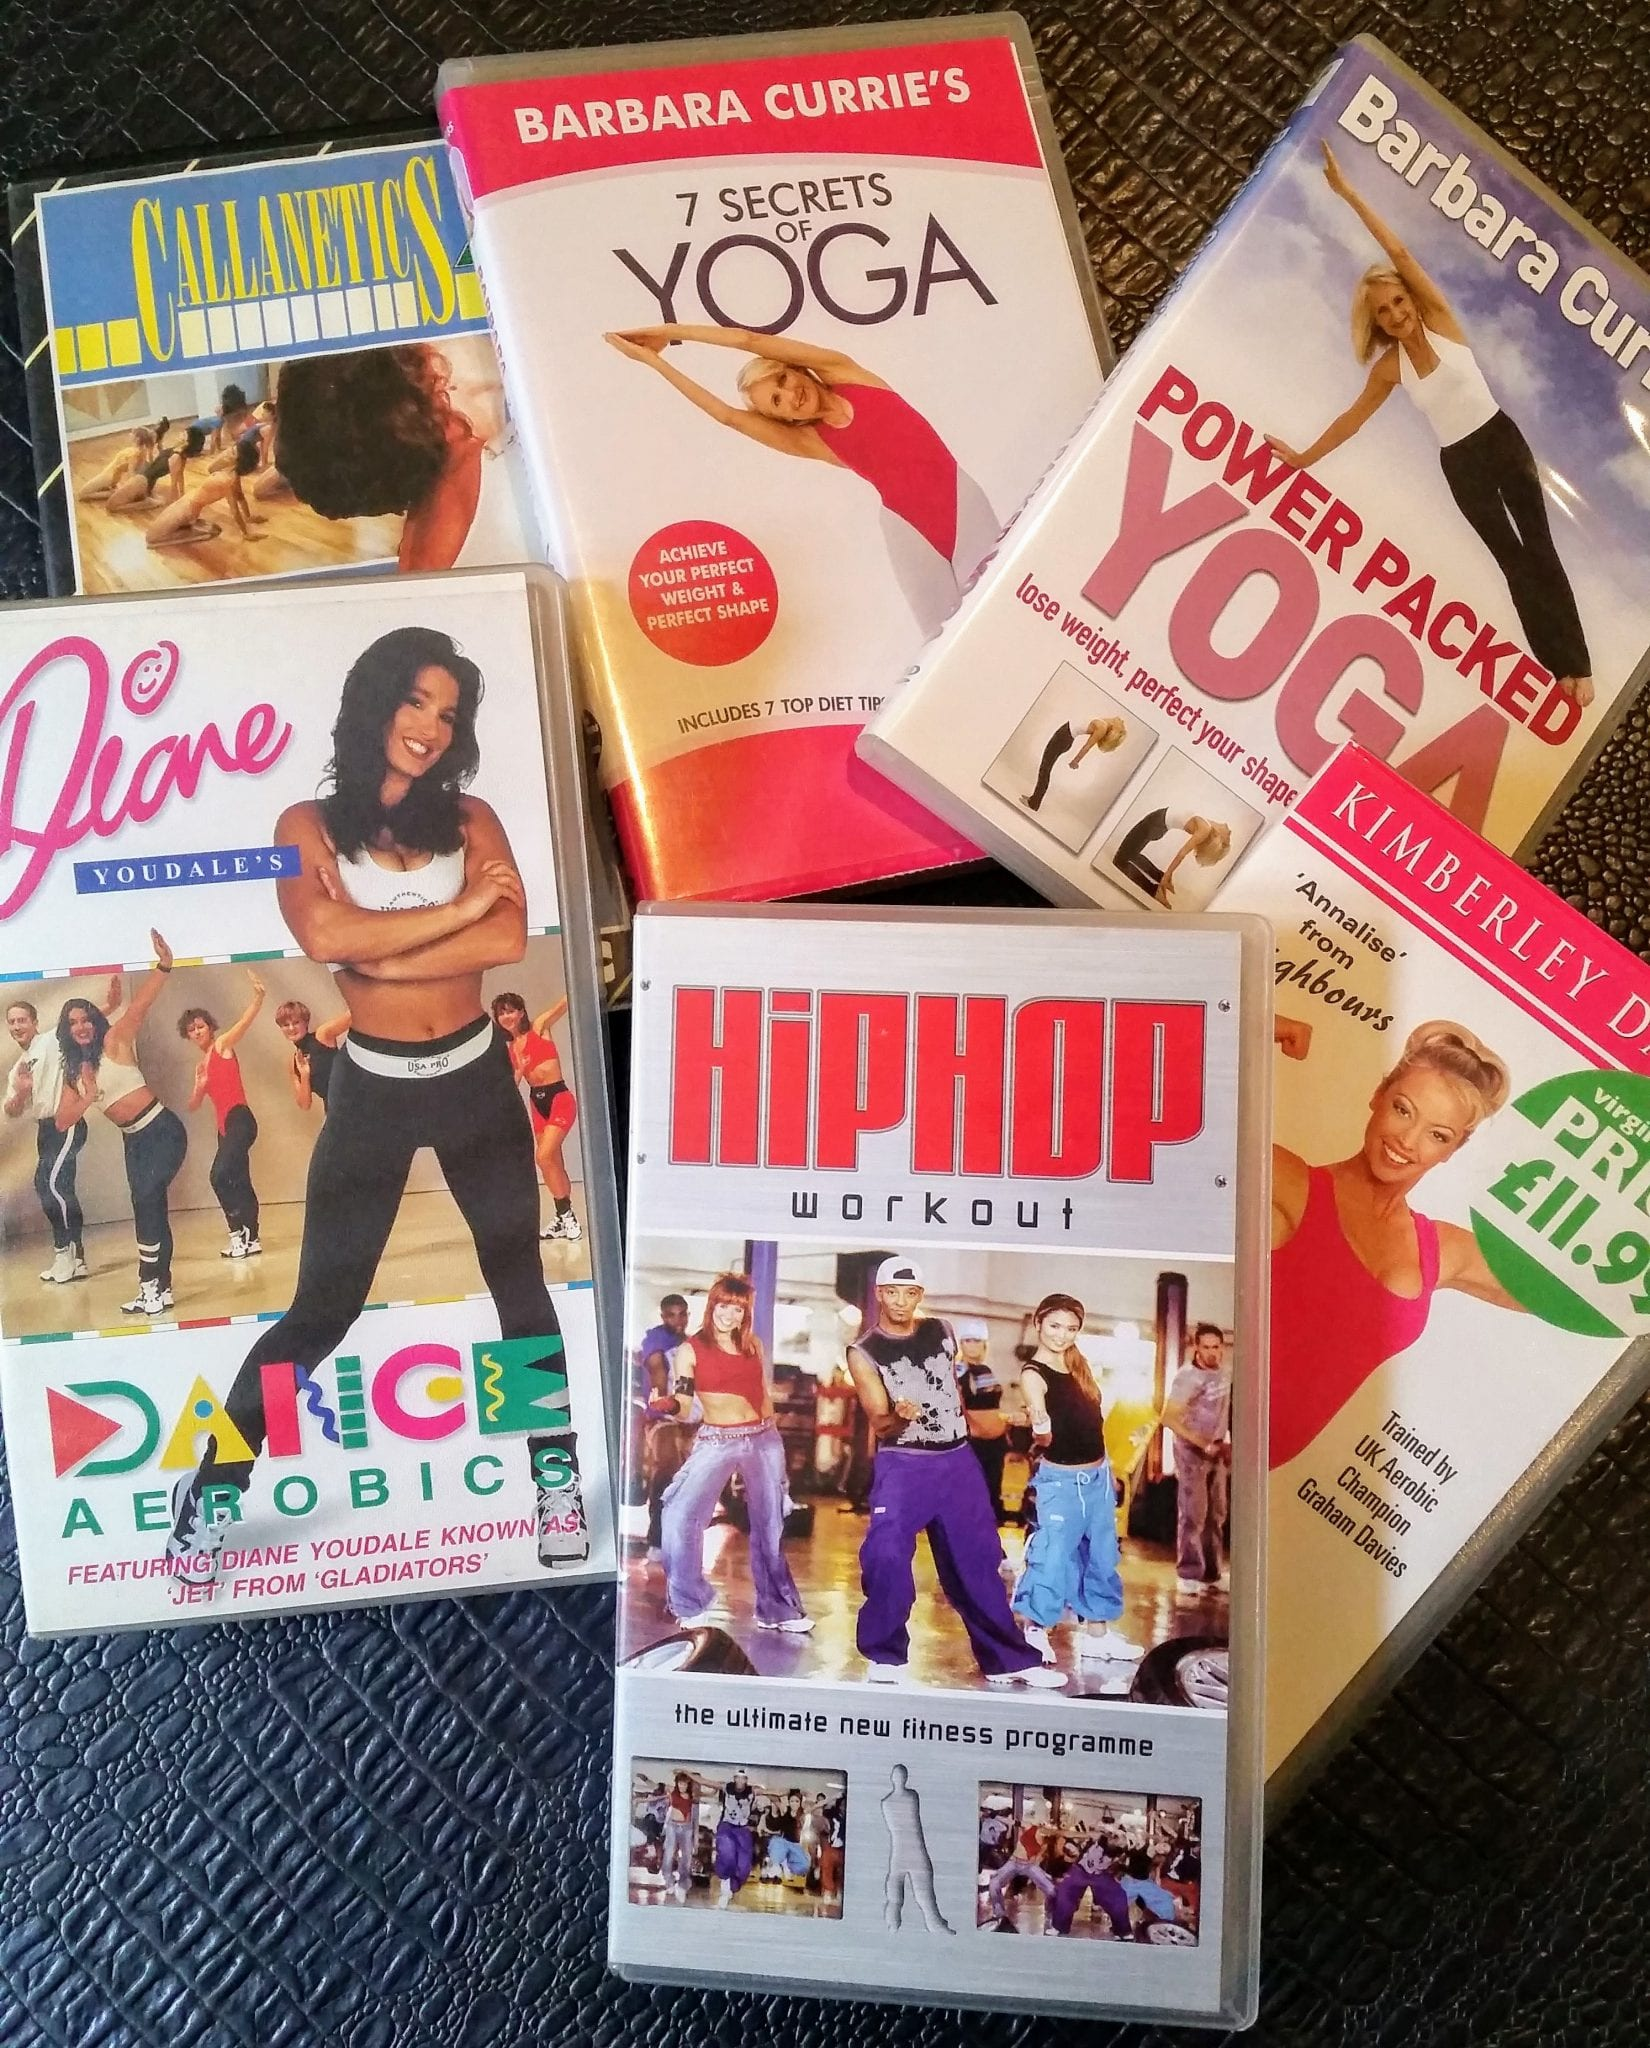 An assortment of yoga and workout video tapes and DVDs